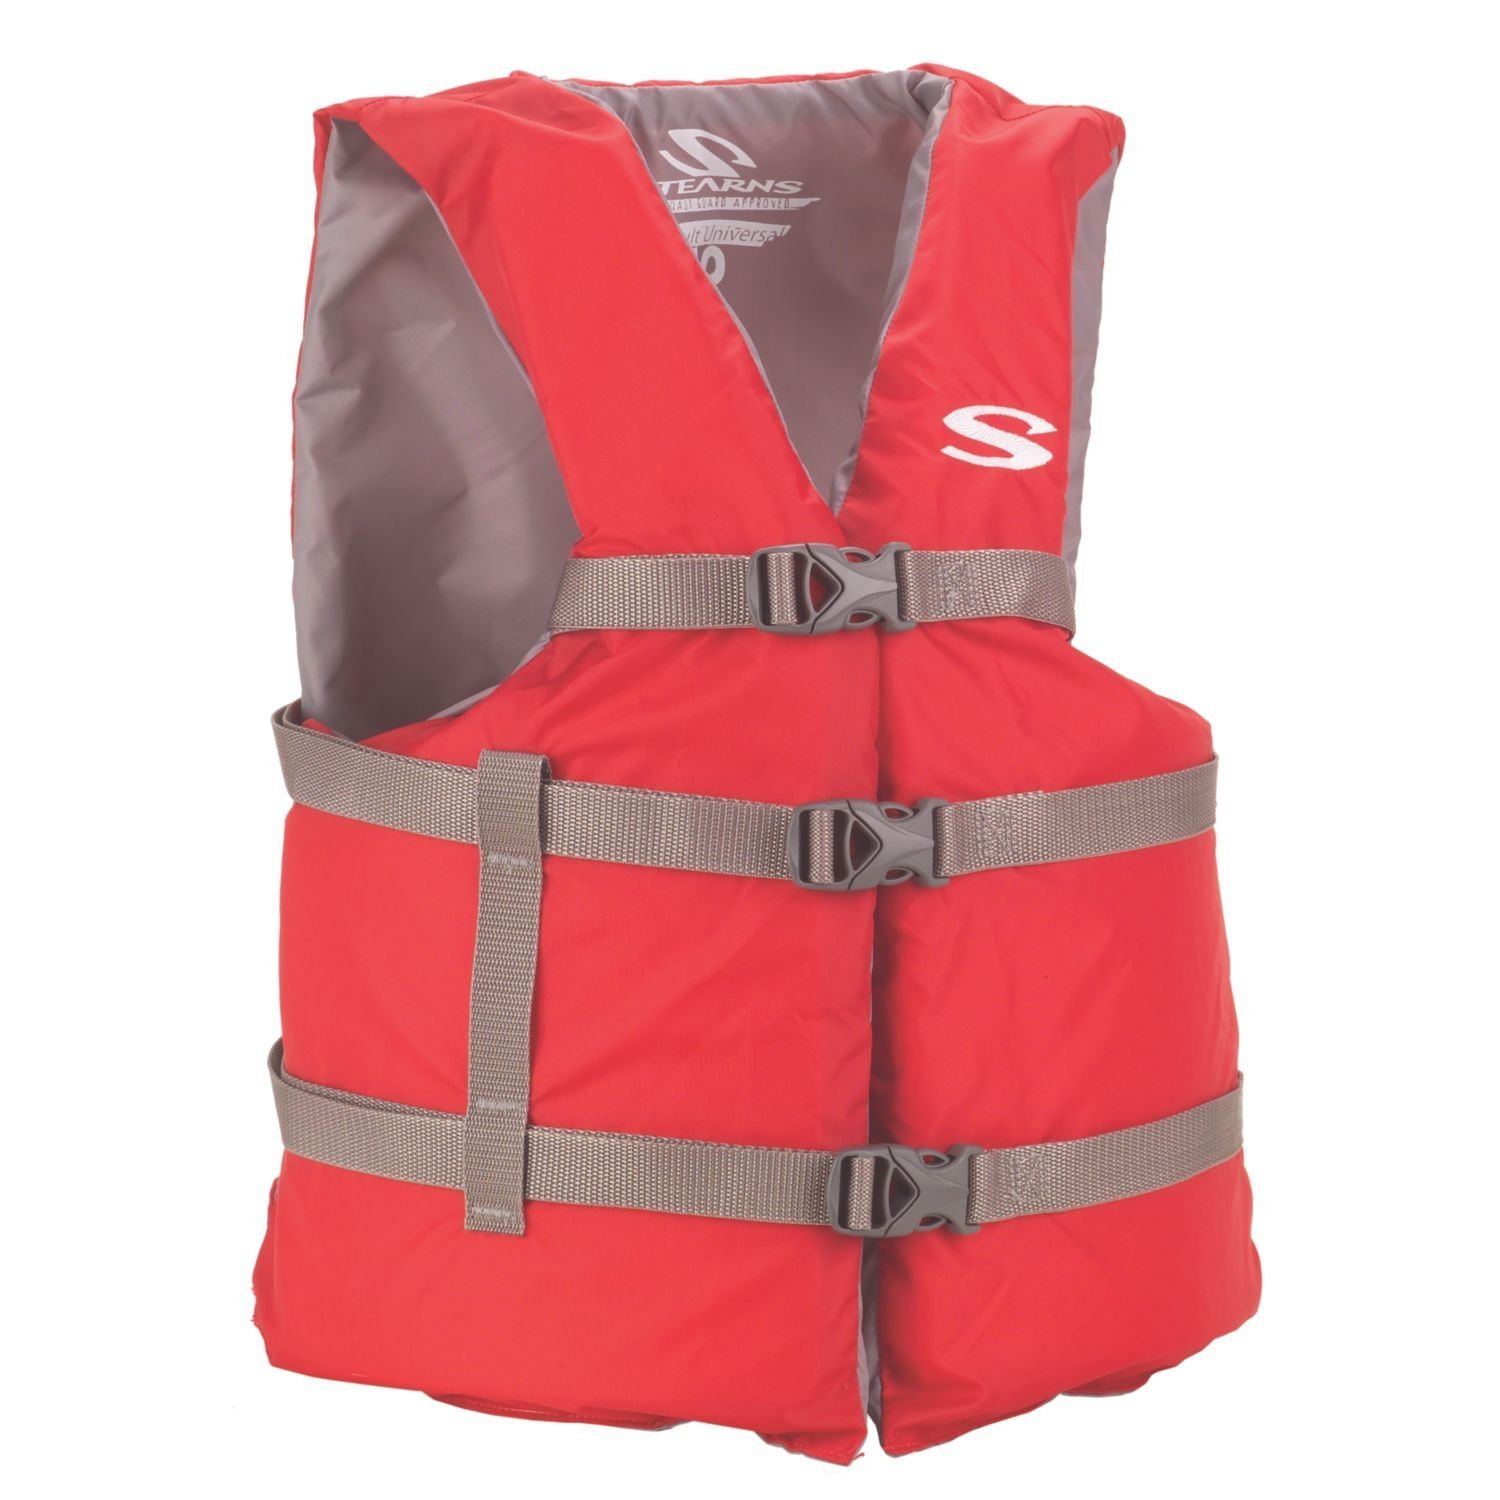 Stearns Adult Classic Series Vest,  3000001413, Red, Oversized by Stearns